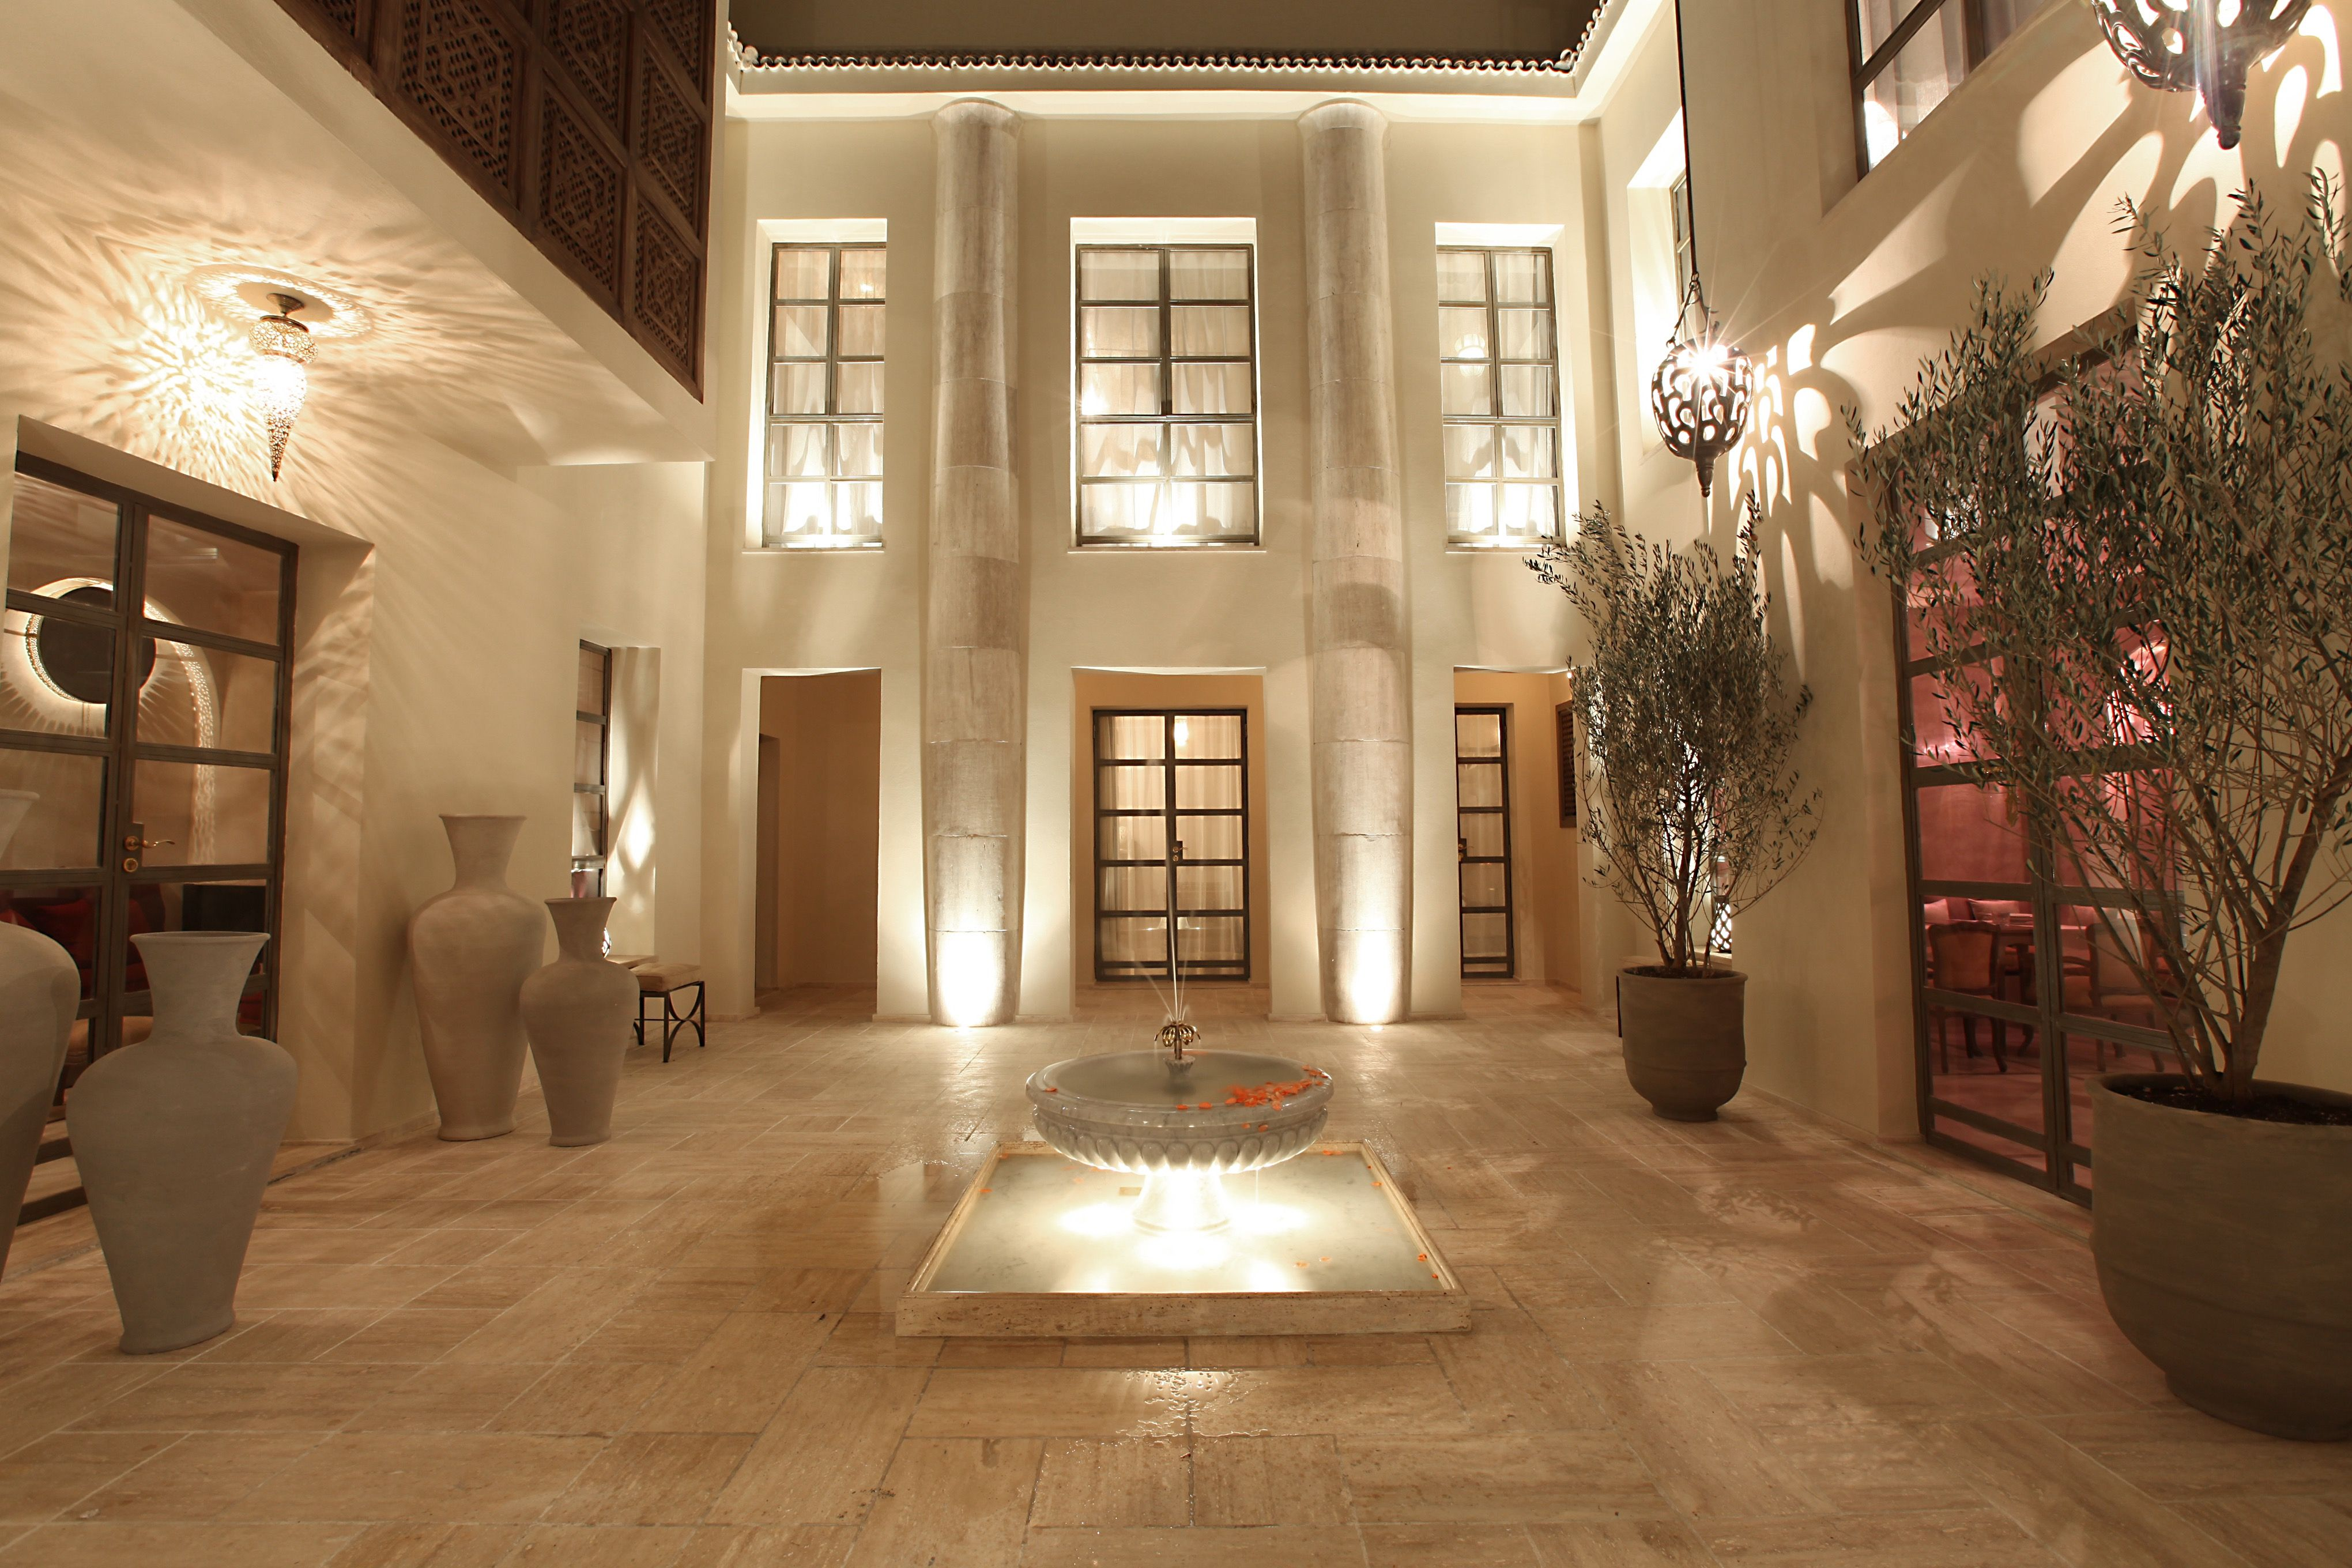 14 Of The Most Magical Riads In Marrakech